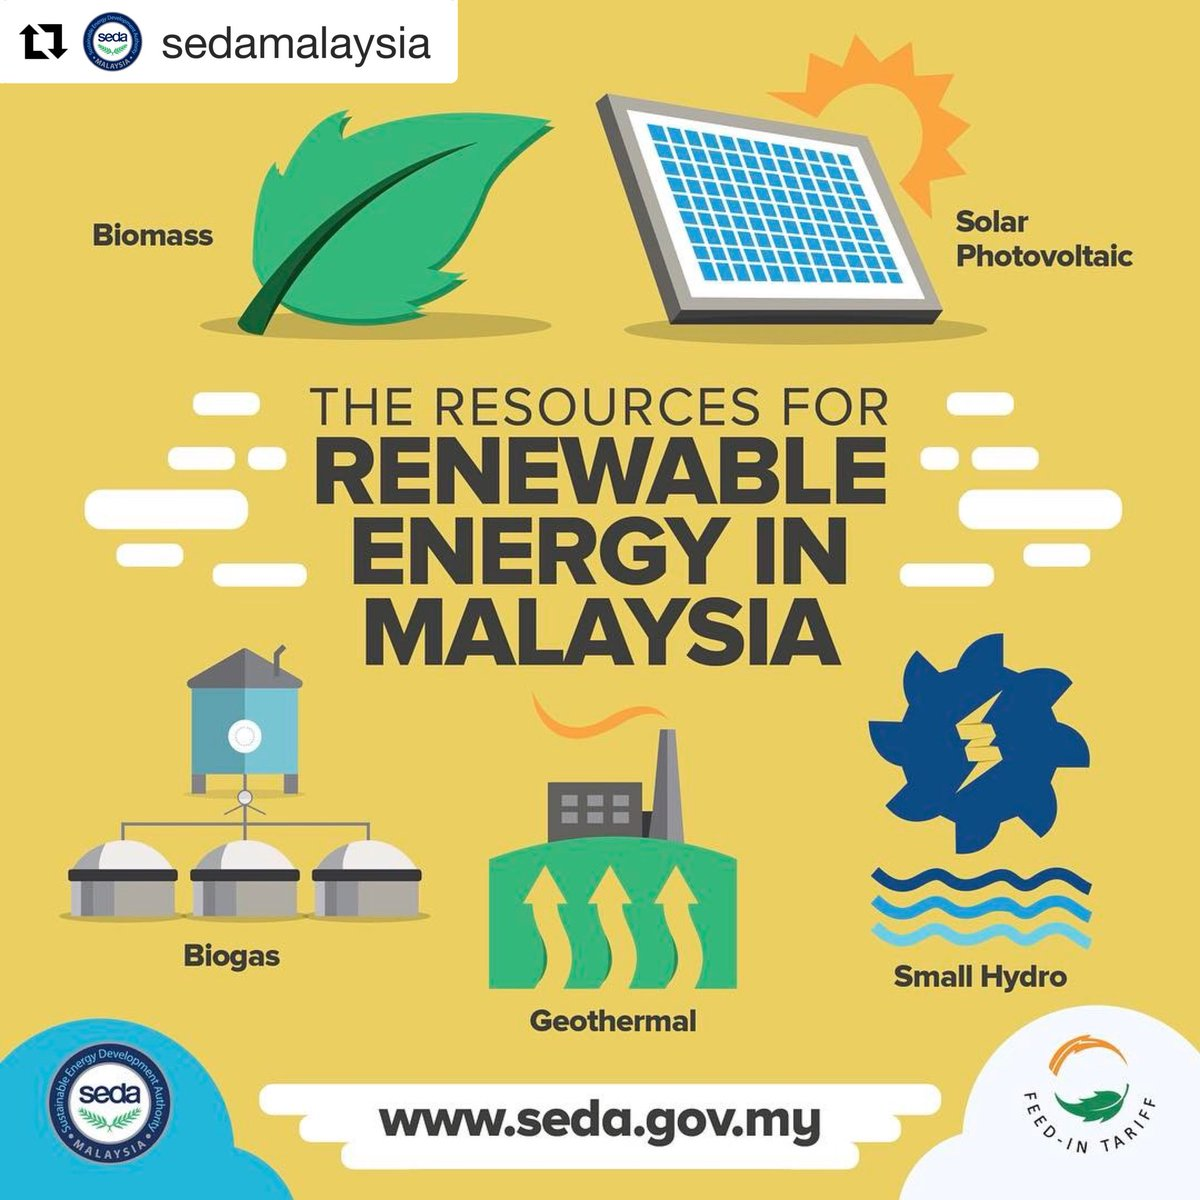 Seda Malaysia On Twitter Malaysia Is Well Endowed With Abundant Renewable Sources Of Energy The Usage Of Renewable Energy Has Contributed To Reduce Pollutions To The Environment And Helped To Mitigate Climate